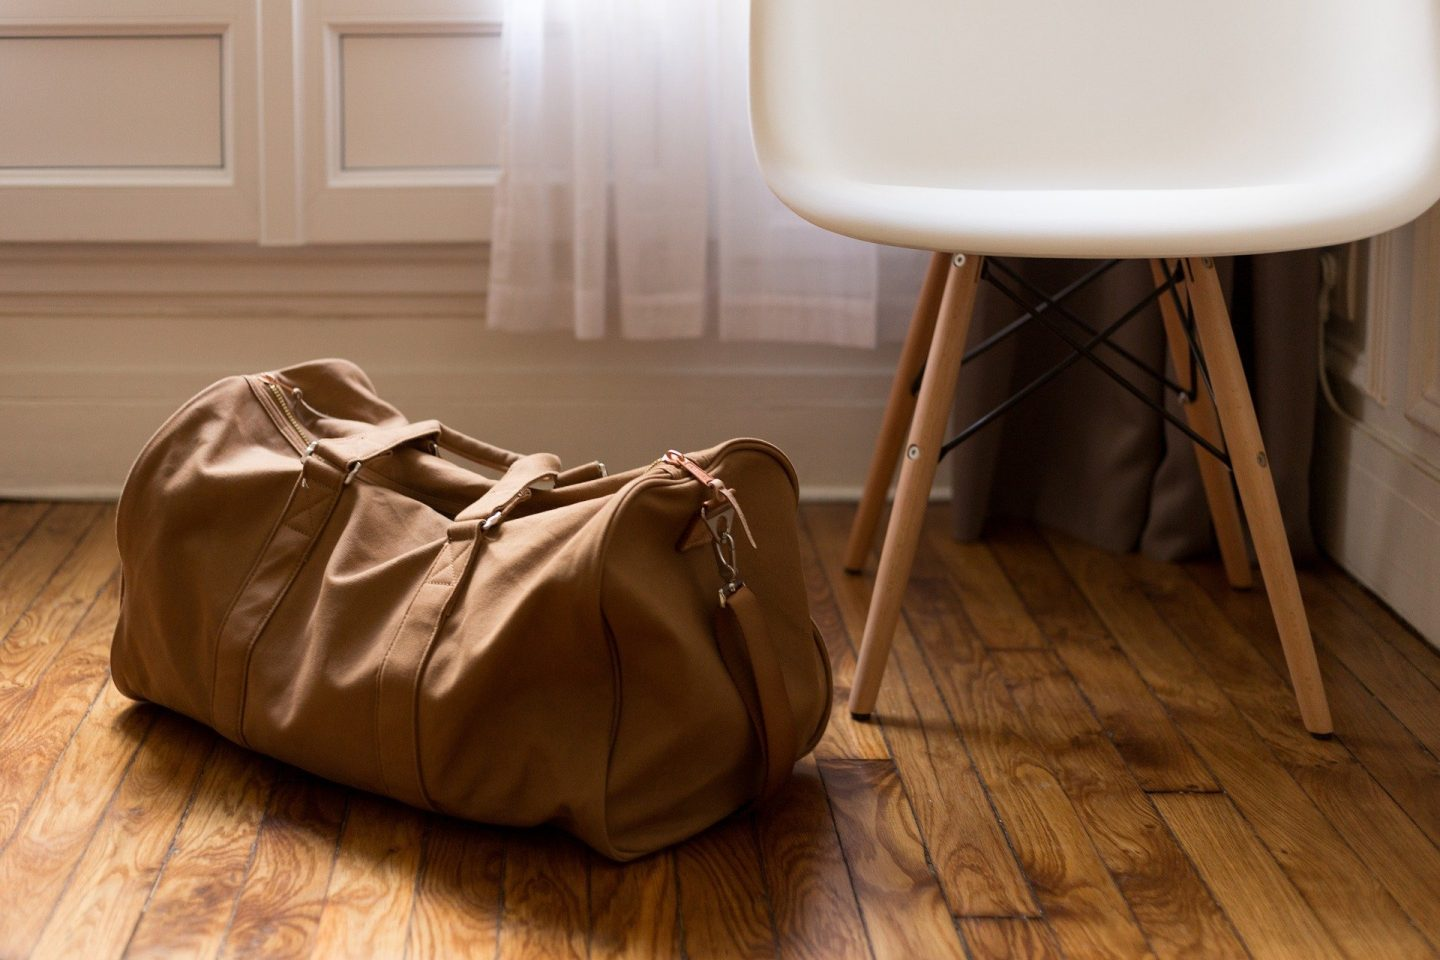 A brown holdall bag on a wooden floor next to a white chair